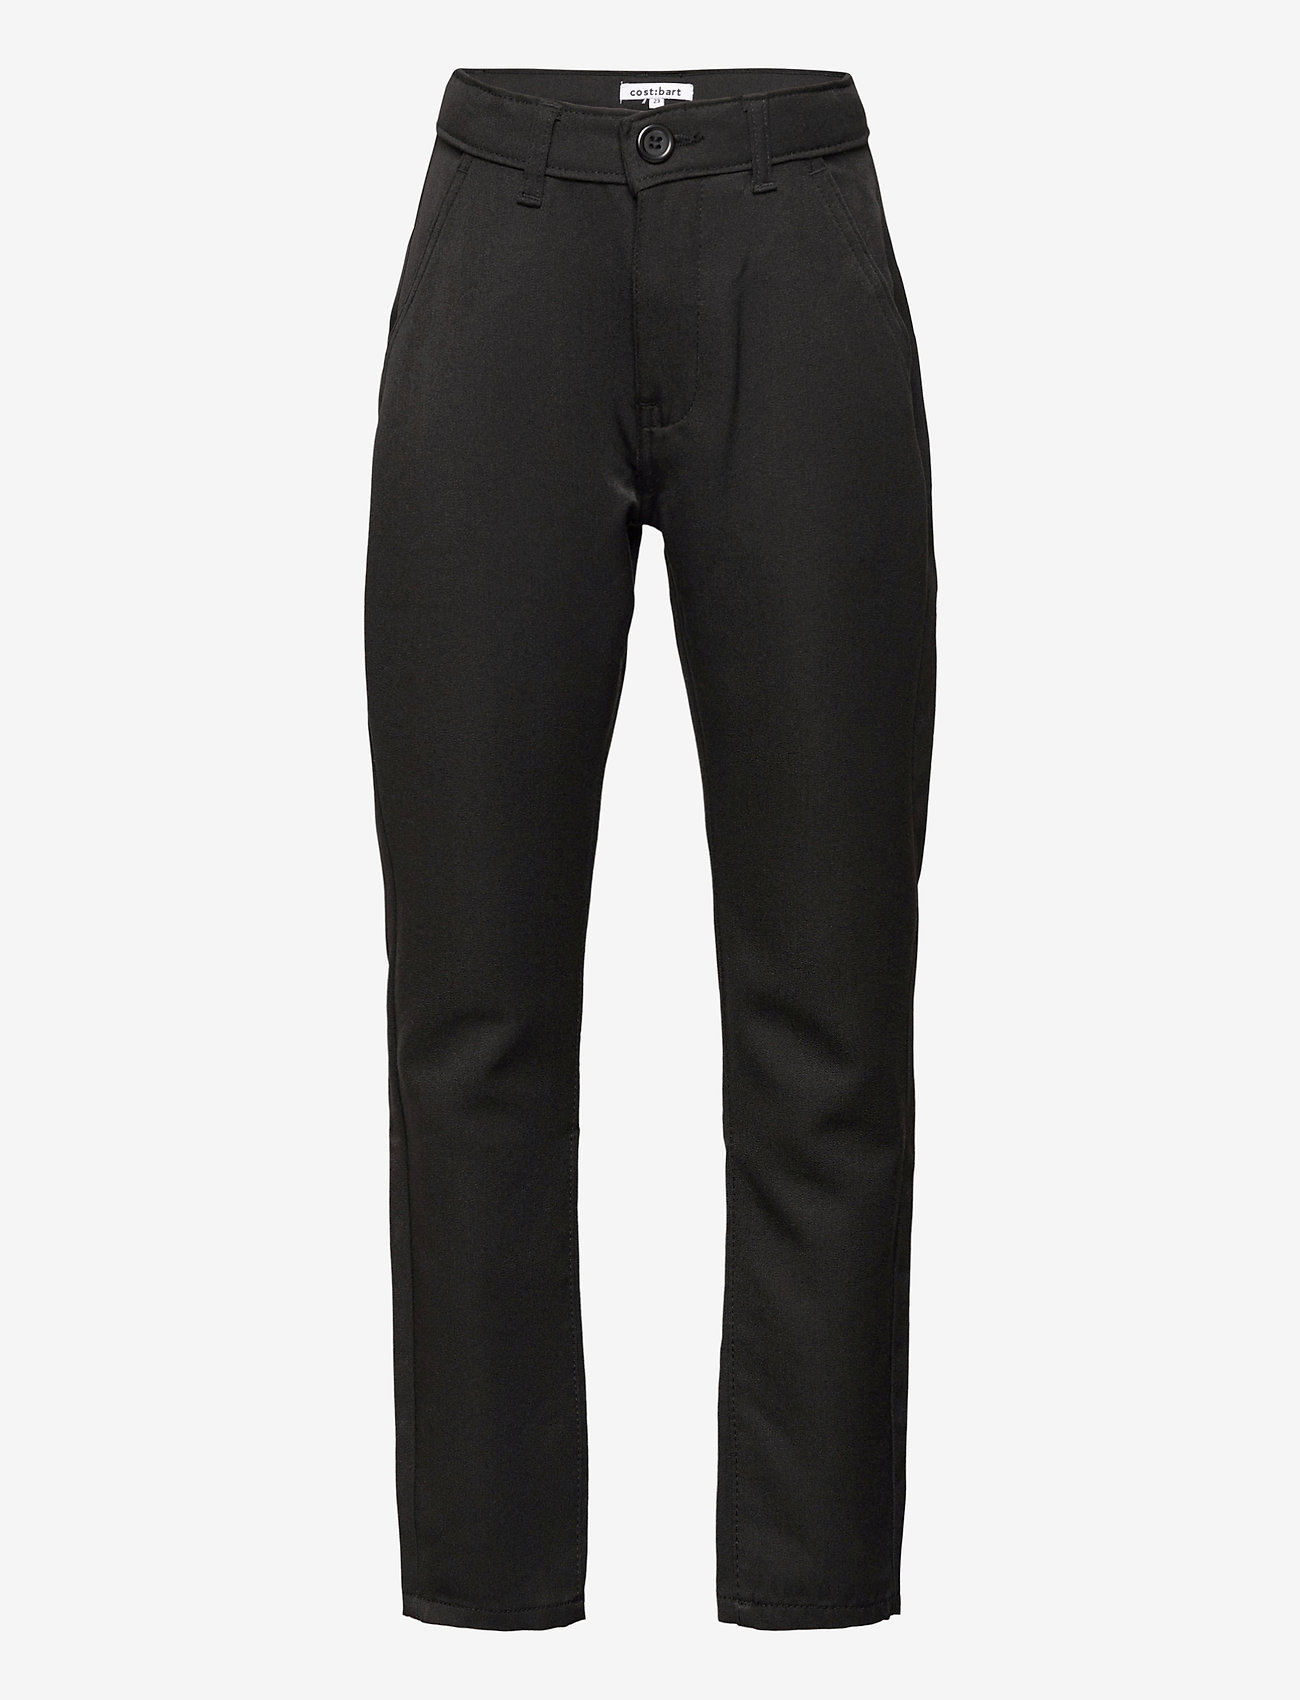 Costbart - CHRIS CHINO PANT - trousers - black - 0